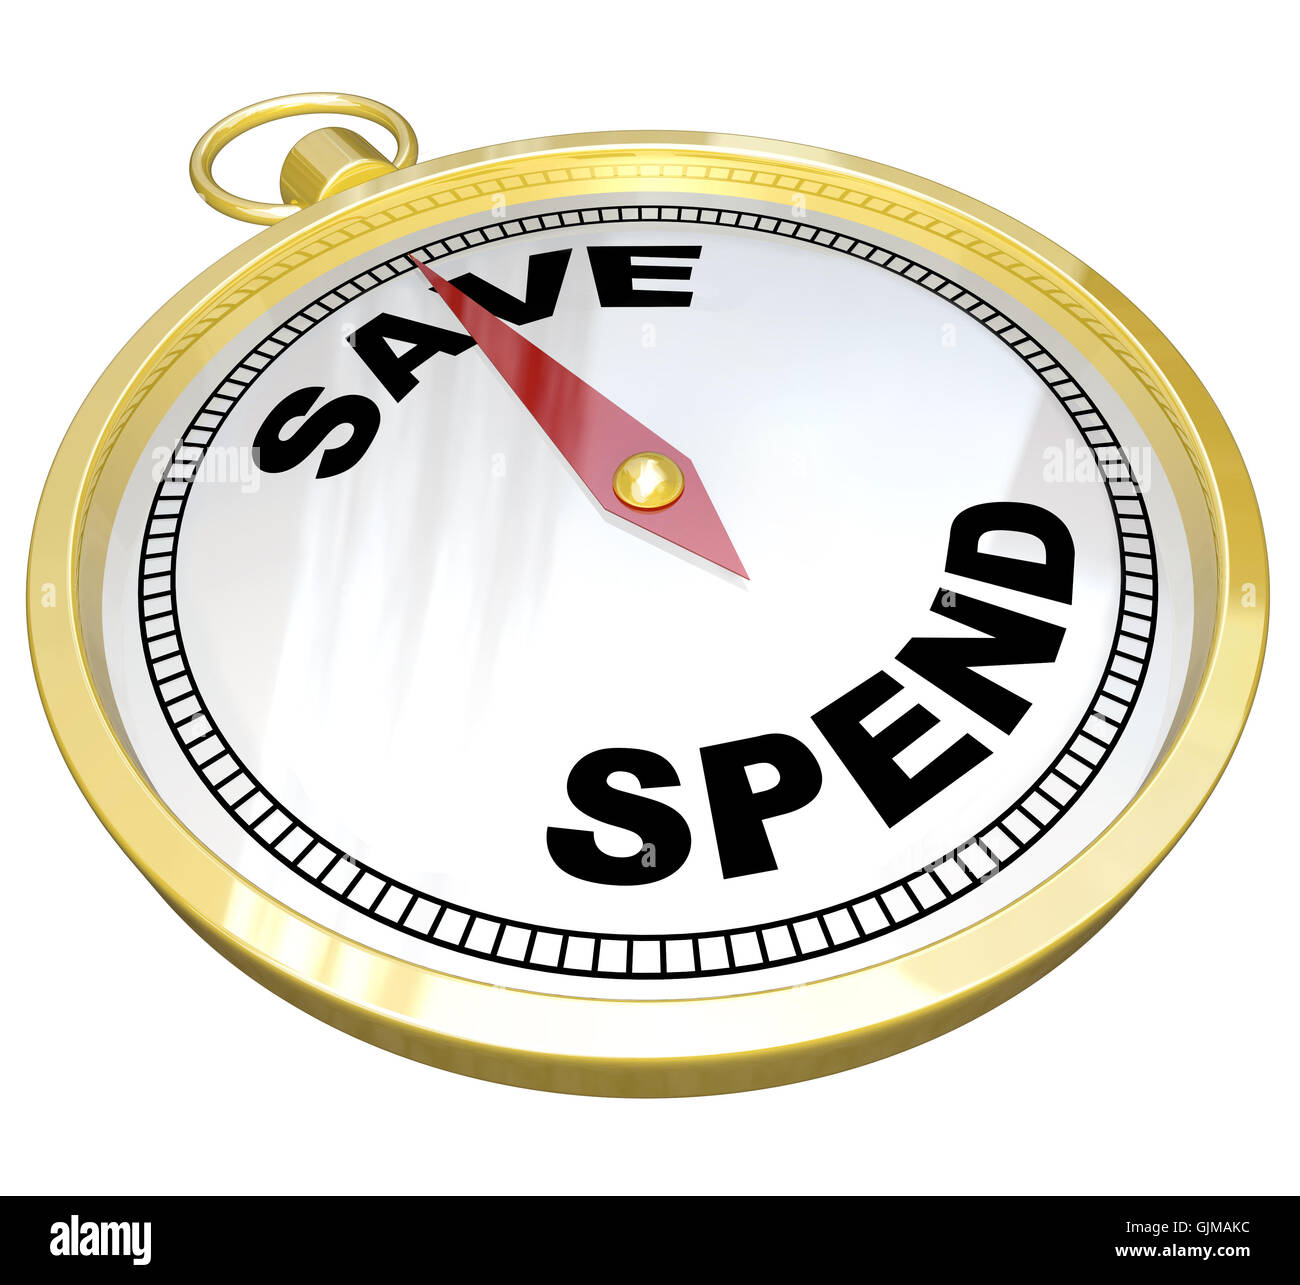 Compass - Leading the Way to Saving vs Spending - Stock Image